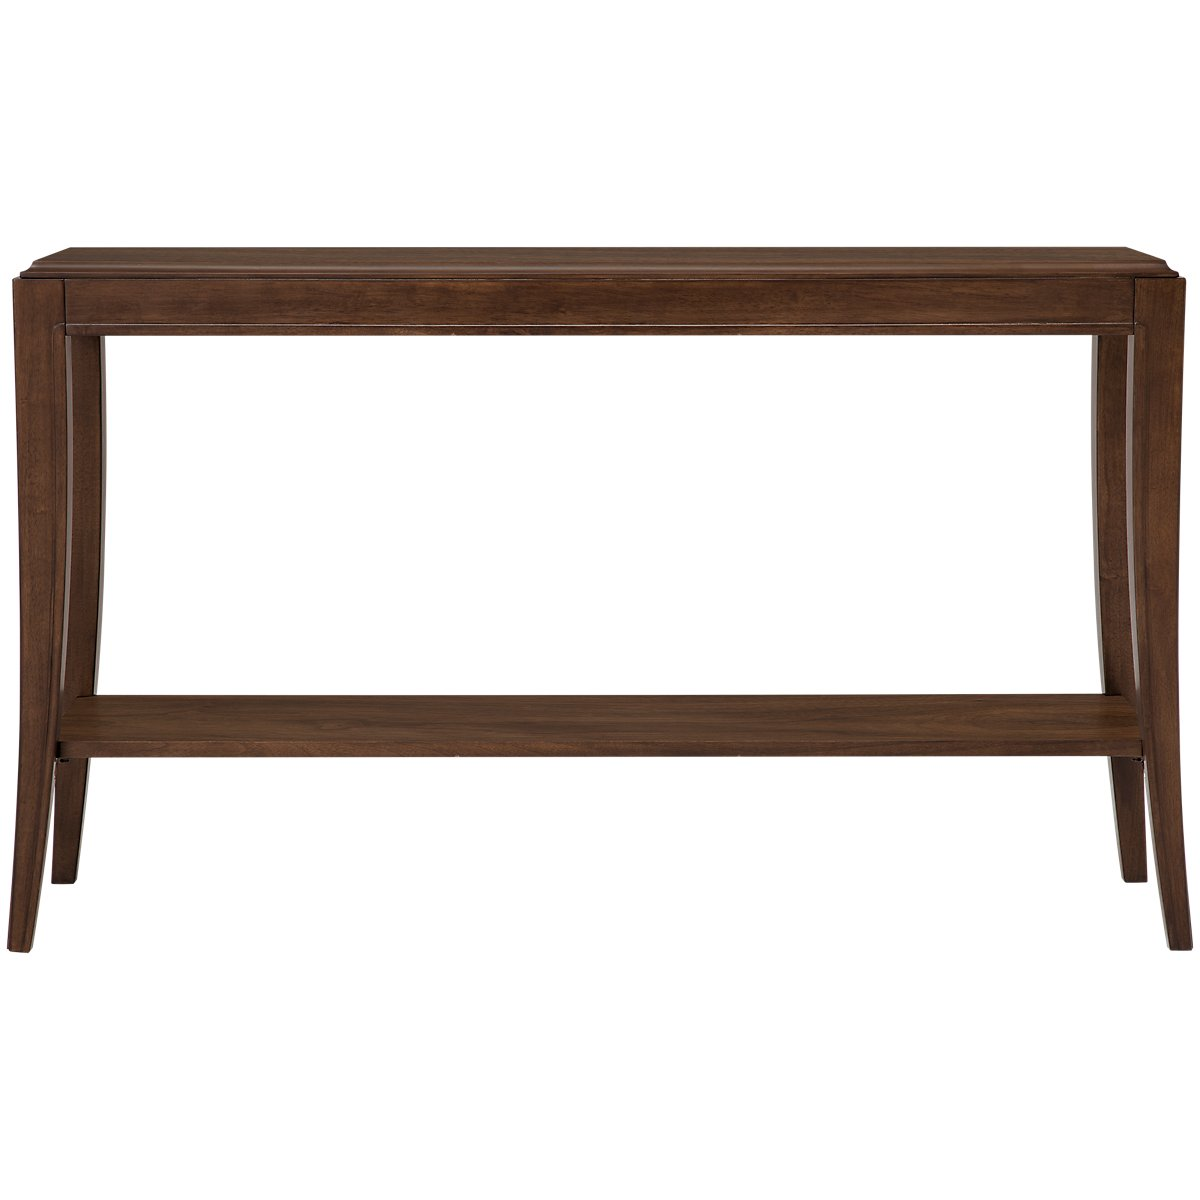 Savoy Mid Tone Sofa Table